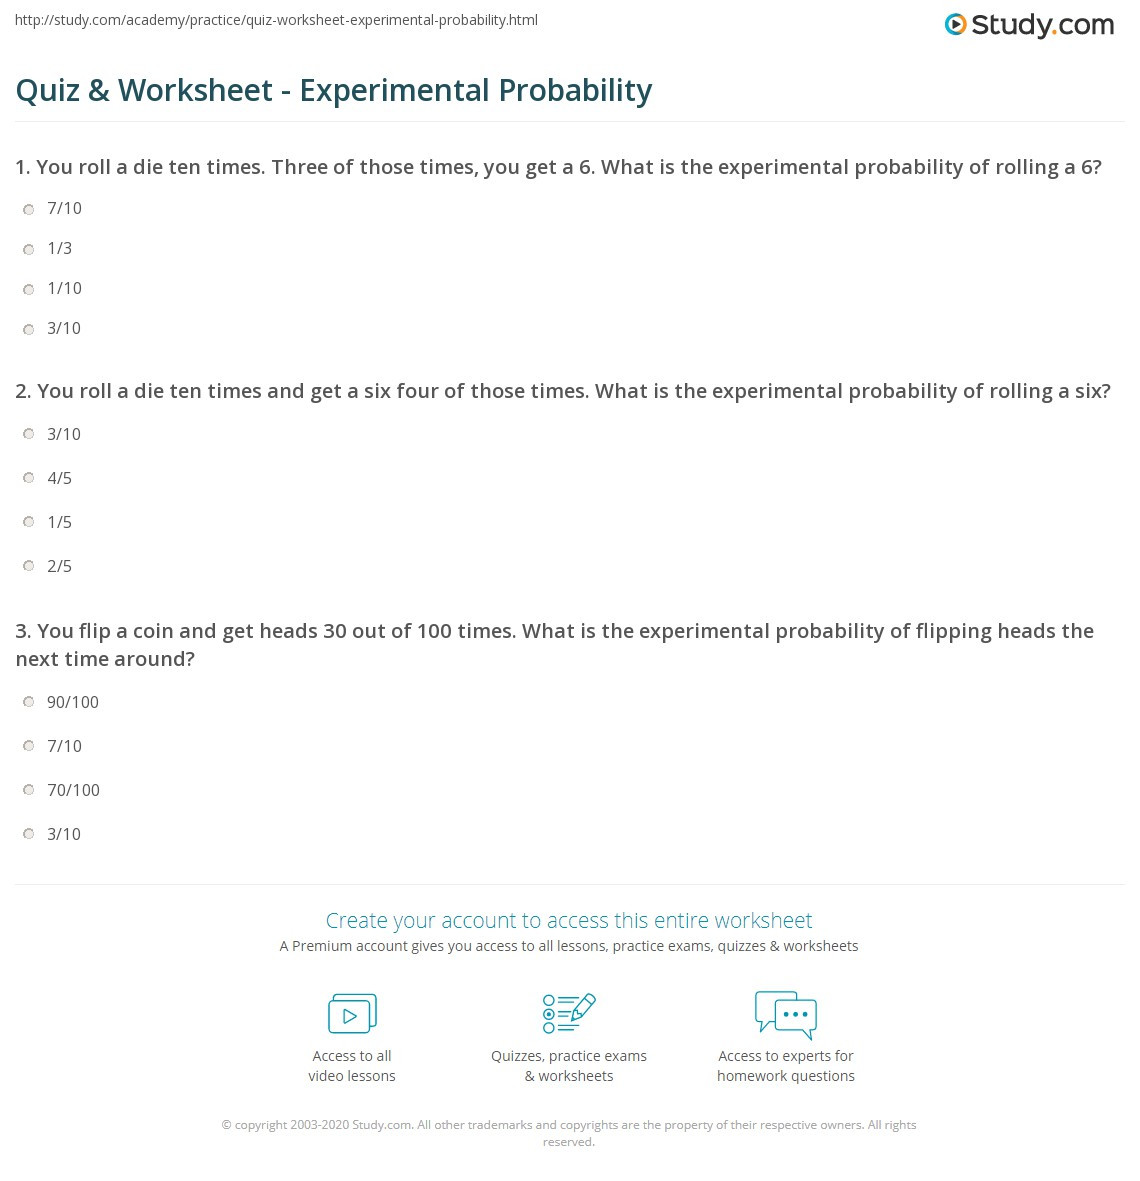 Theoretical Probability Worksheets 7th Grade Quiz & Worksheet Experimental Probability